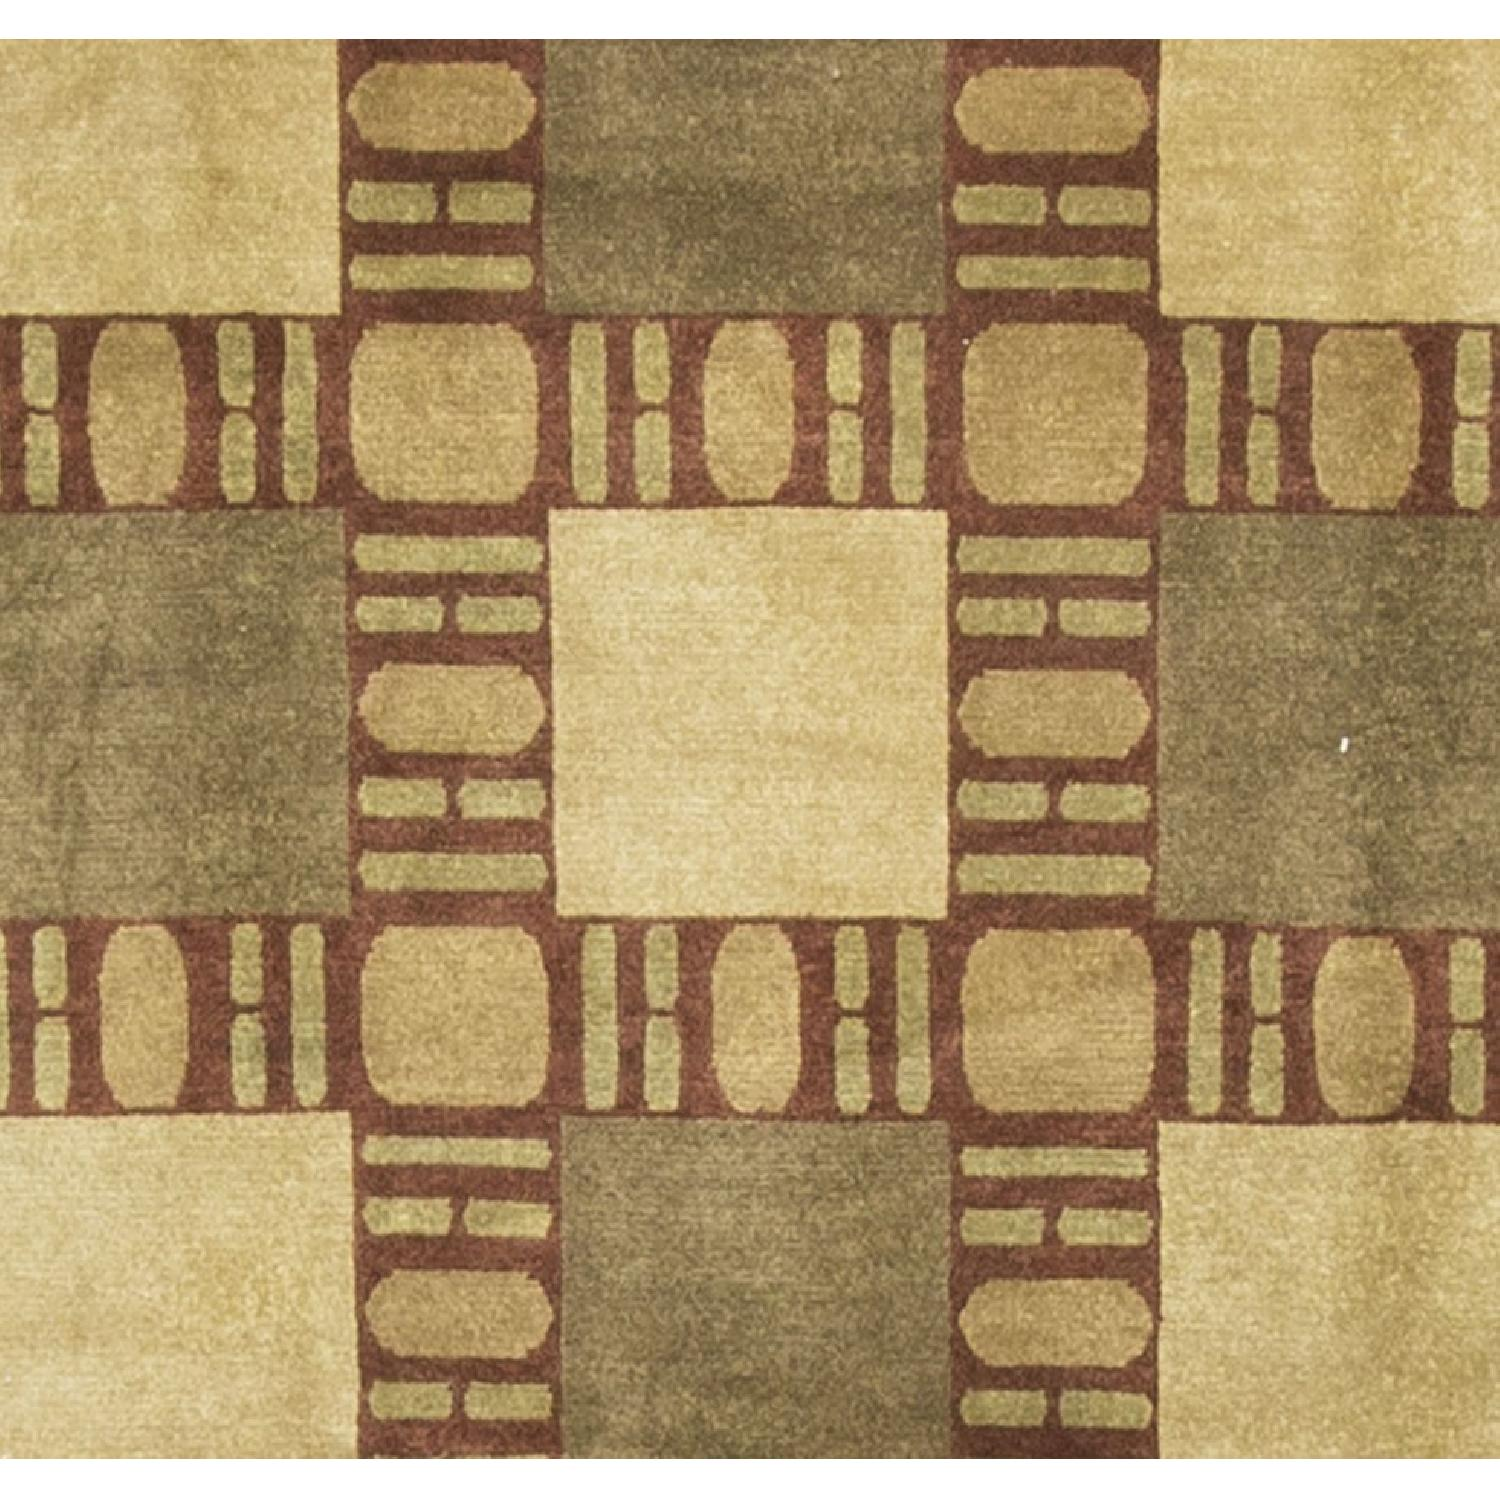 Modern Contemporary Hand Knotted Wool Rug in Brown/Red/Beige - image-1